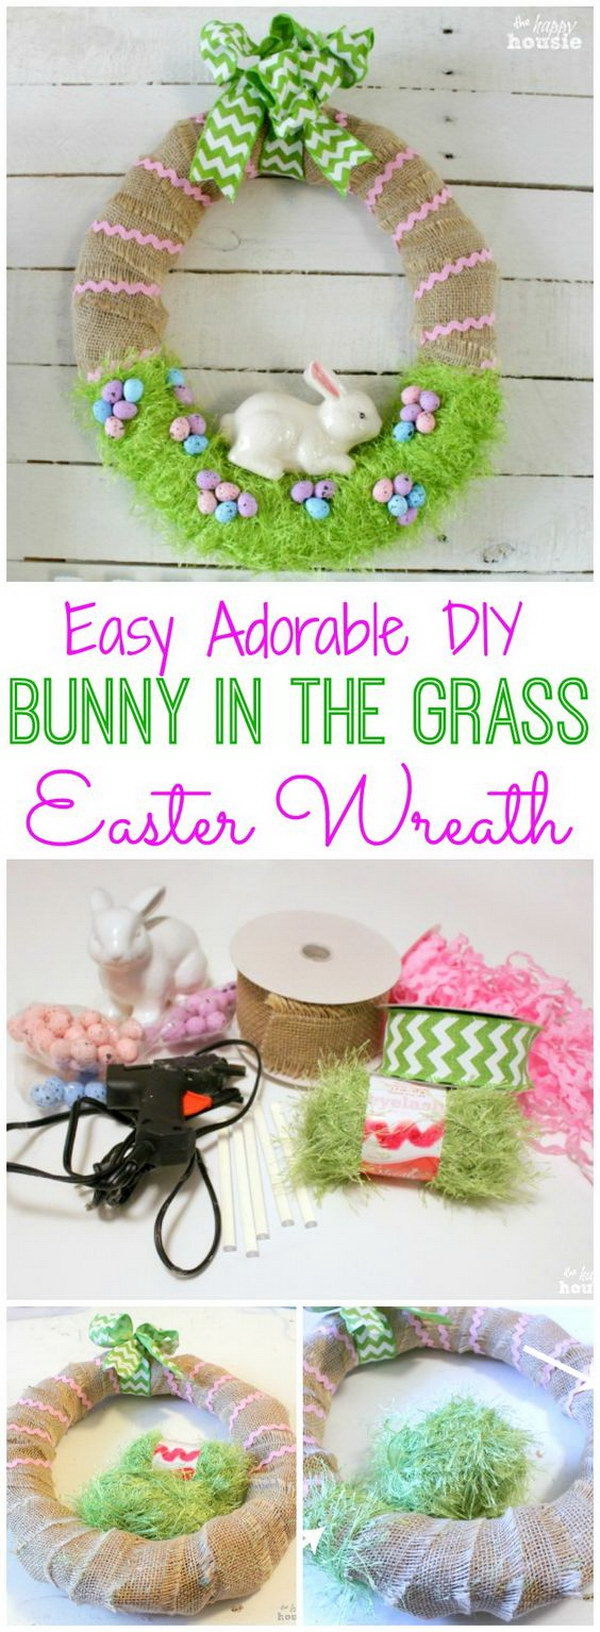 DIY Bunny in the Grass Wreath